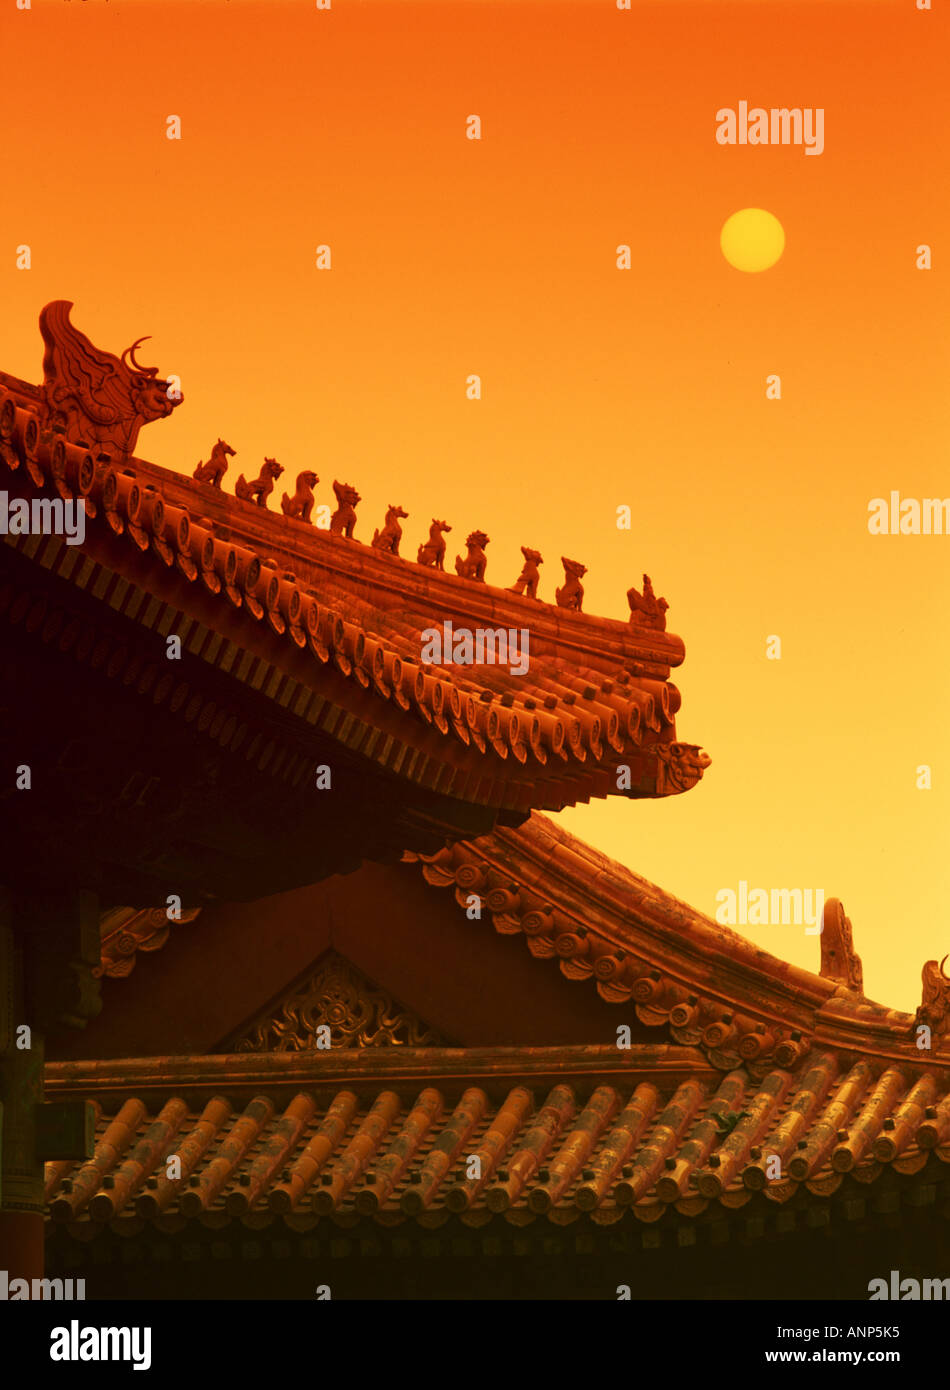 Low angle view of le toit d'un temple chinois Photo Stock